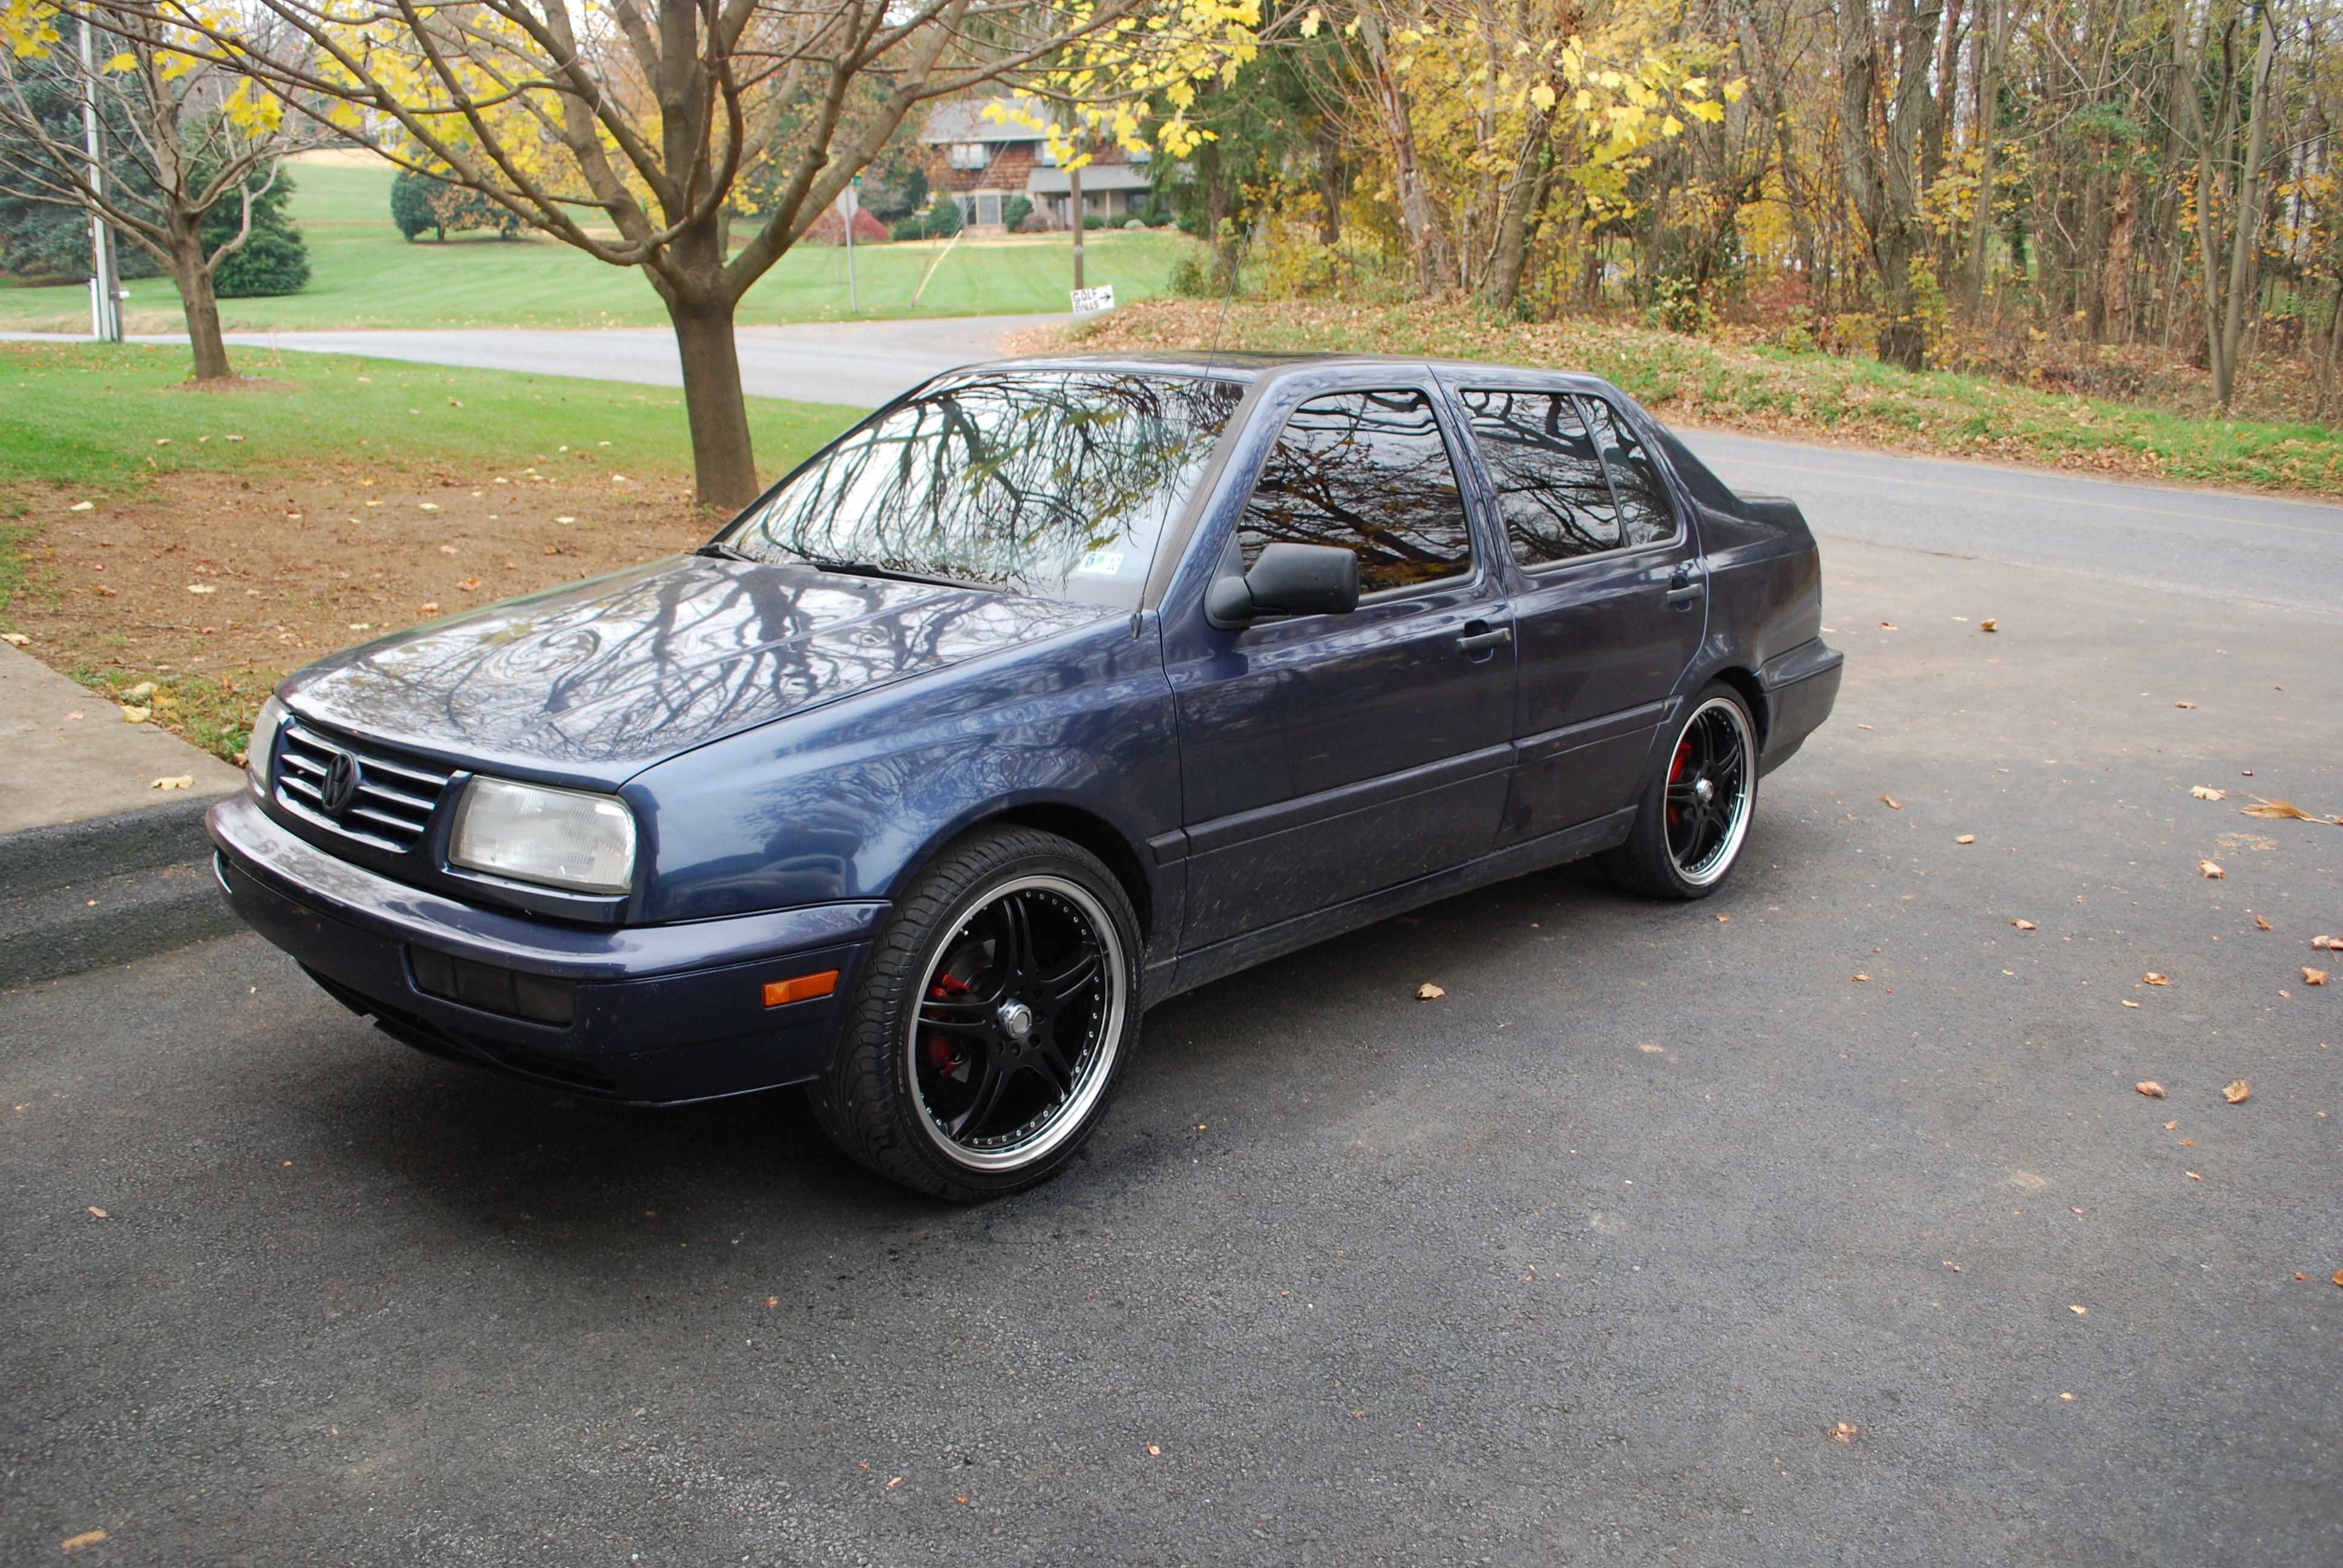 urbaninnovations's 1997 Volkswagen Jetta